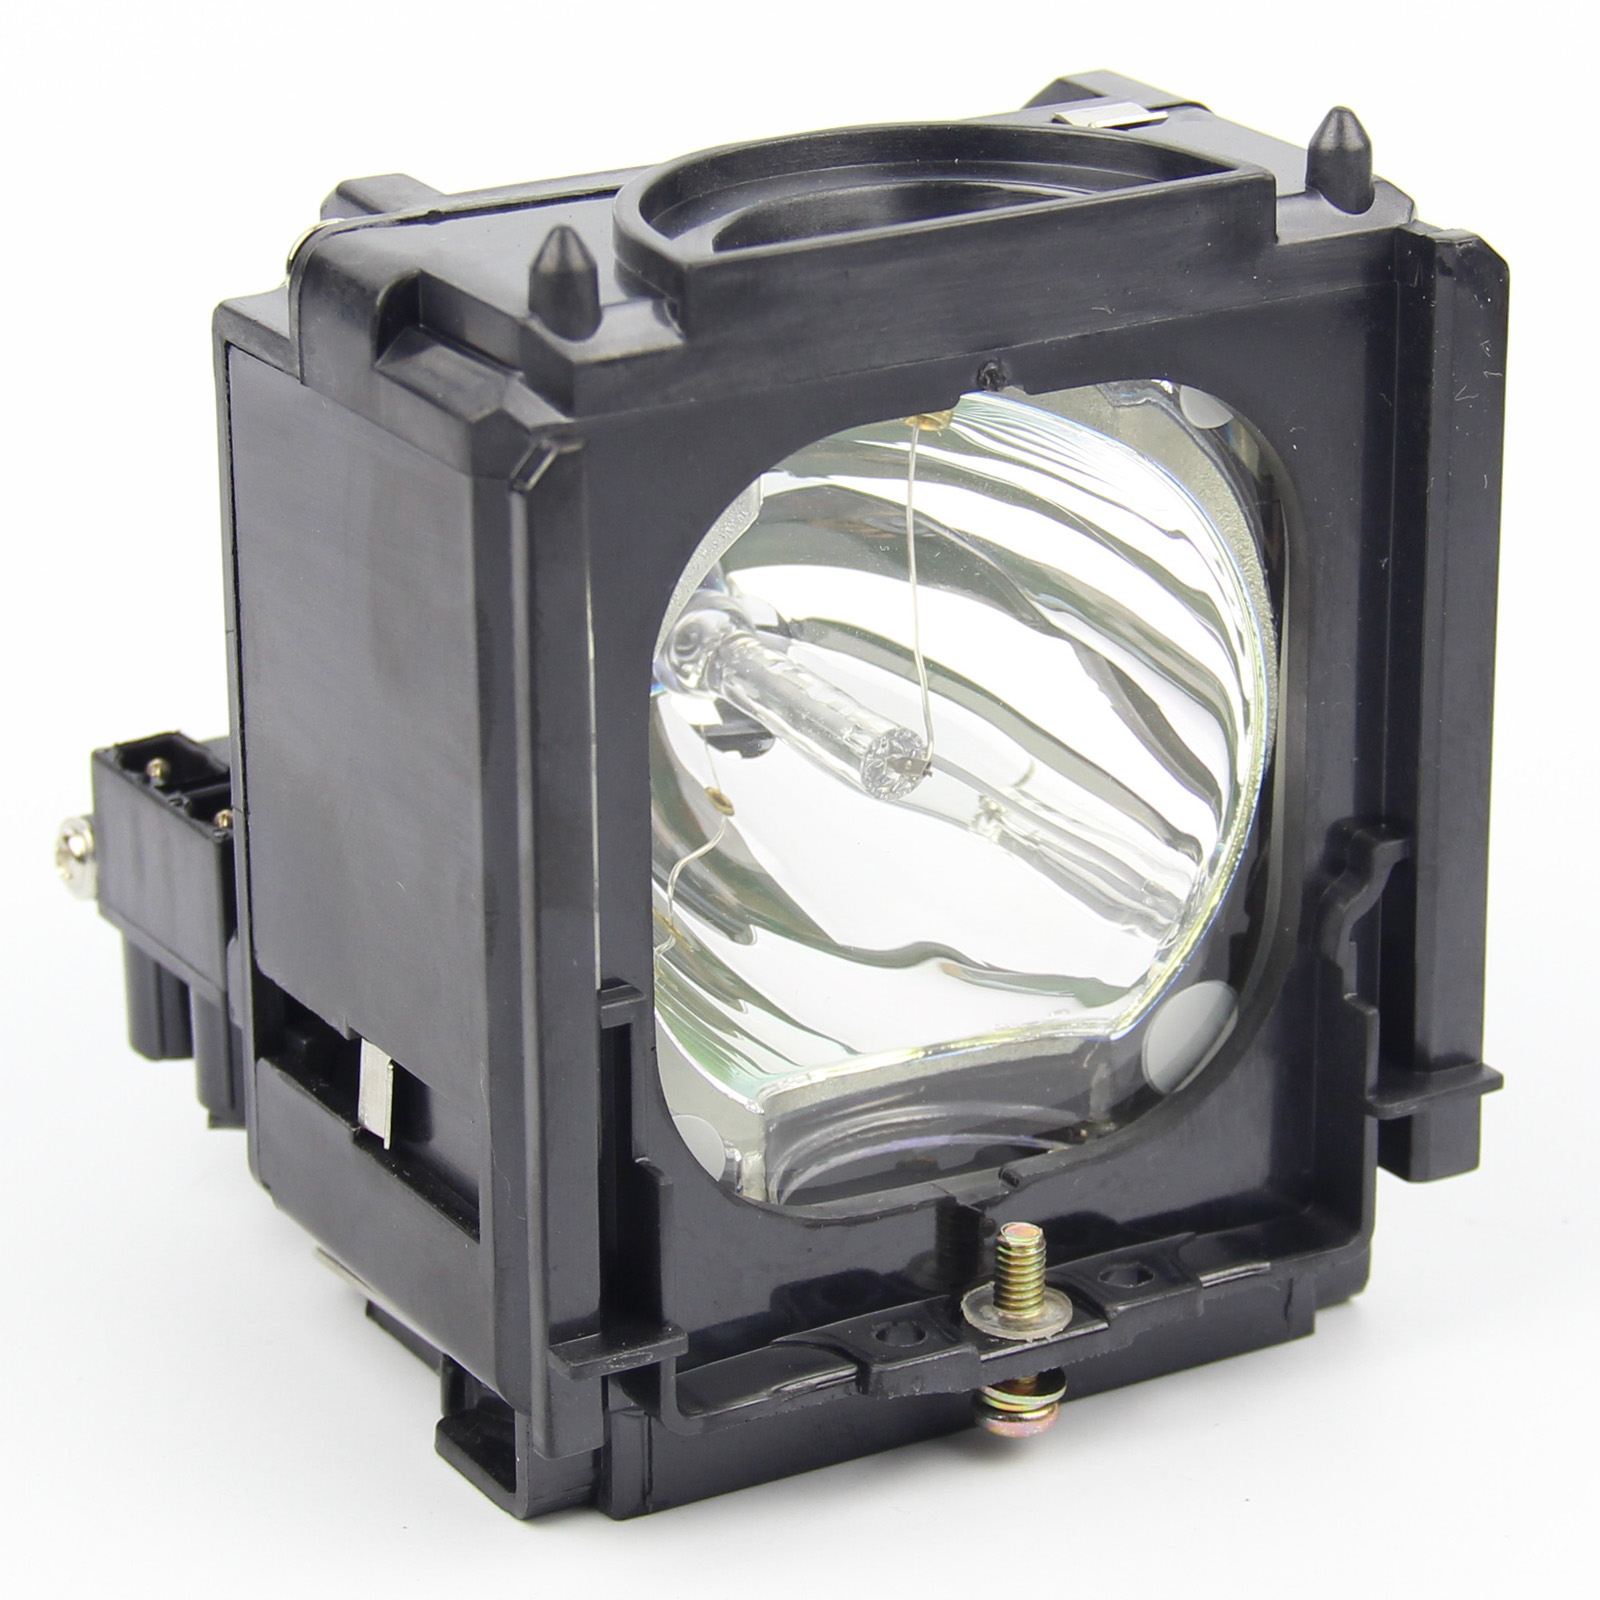 Replacement for Samsung Hls6166wx//xac Dlp Chip Projector Tv Lamp Bulb by Technical Precision